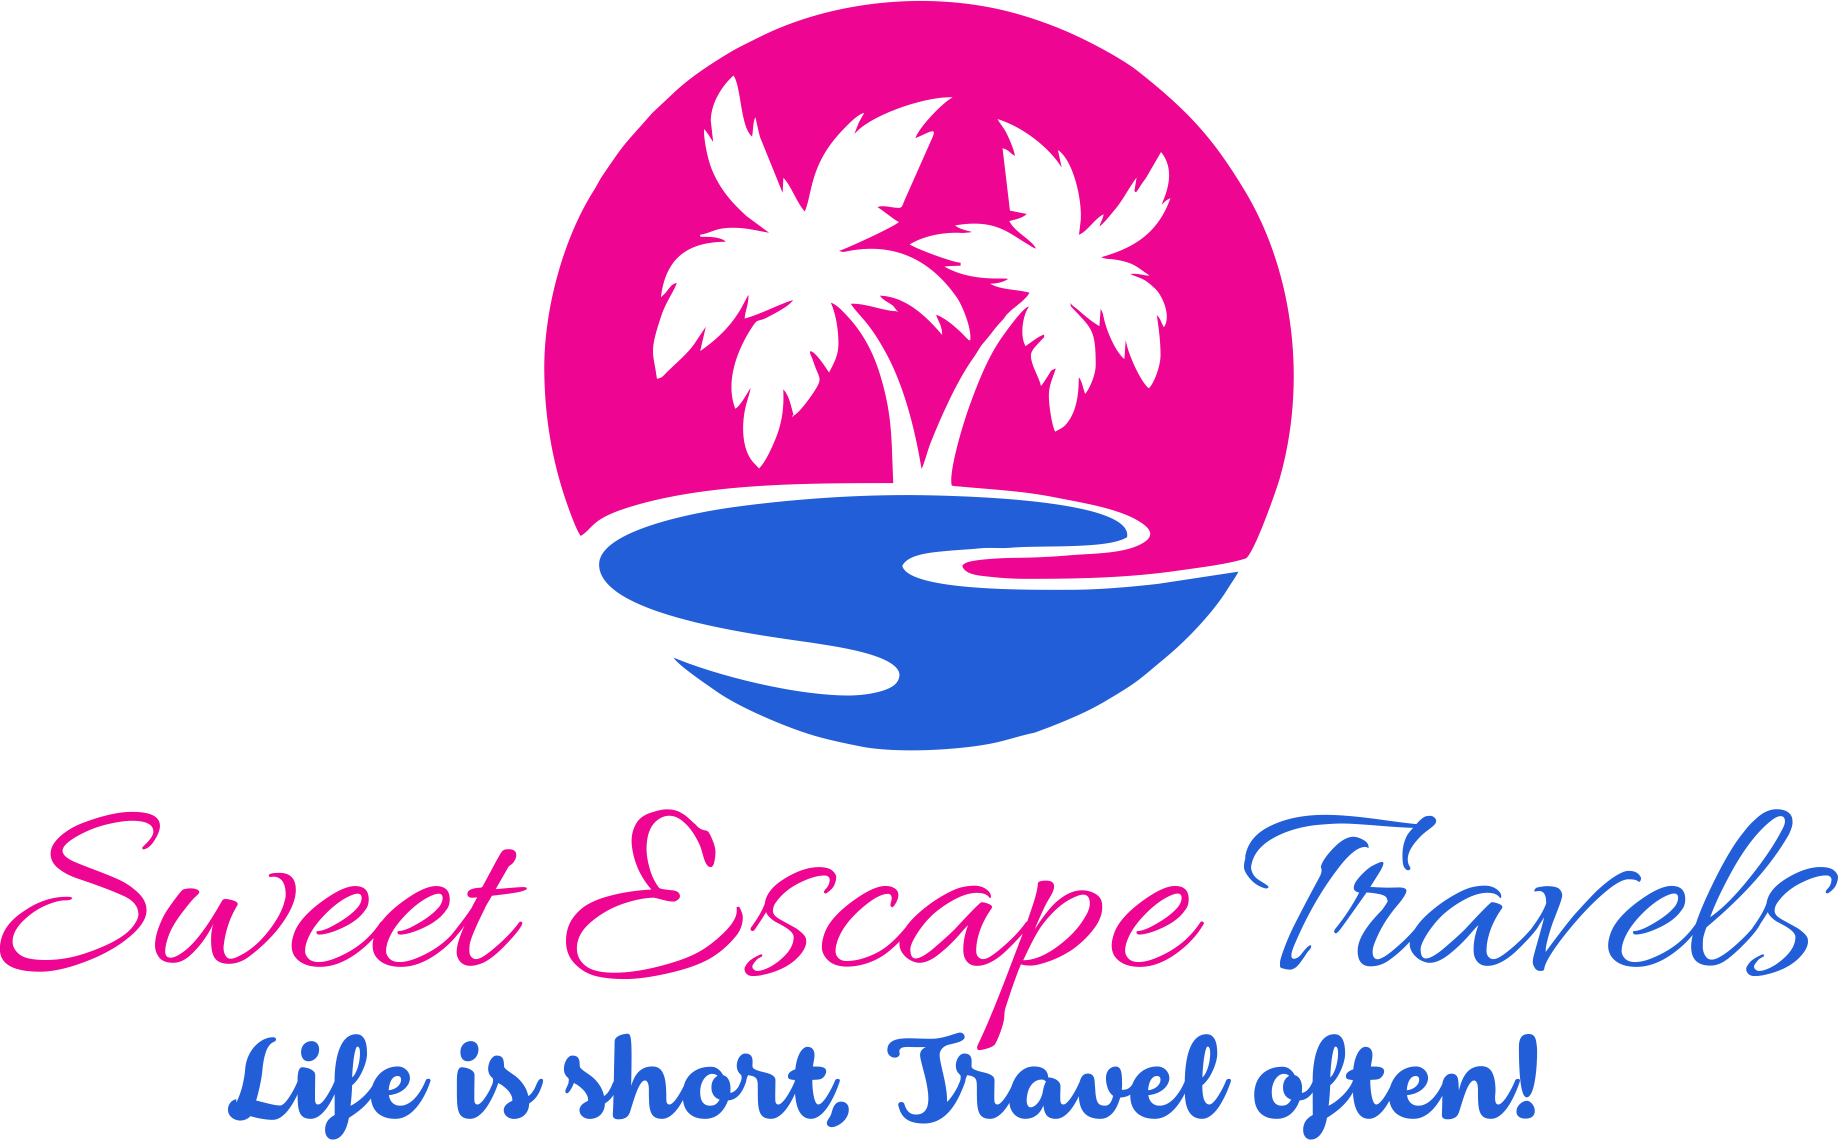 Sweet Escape Travels